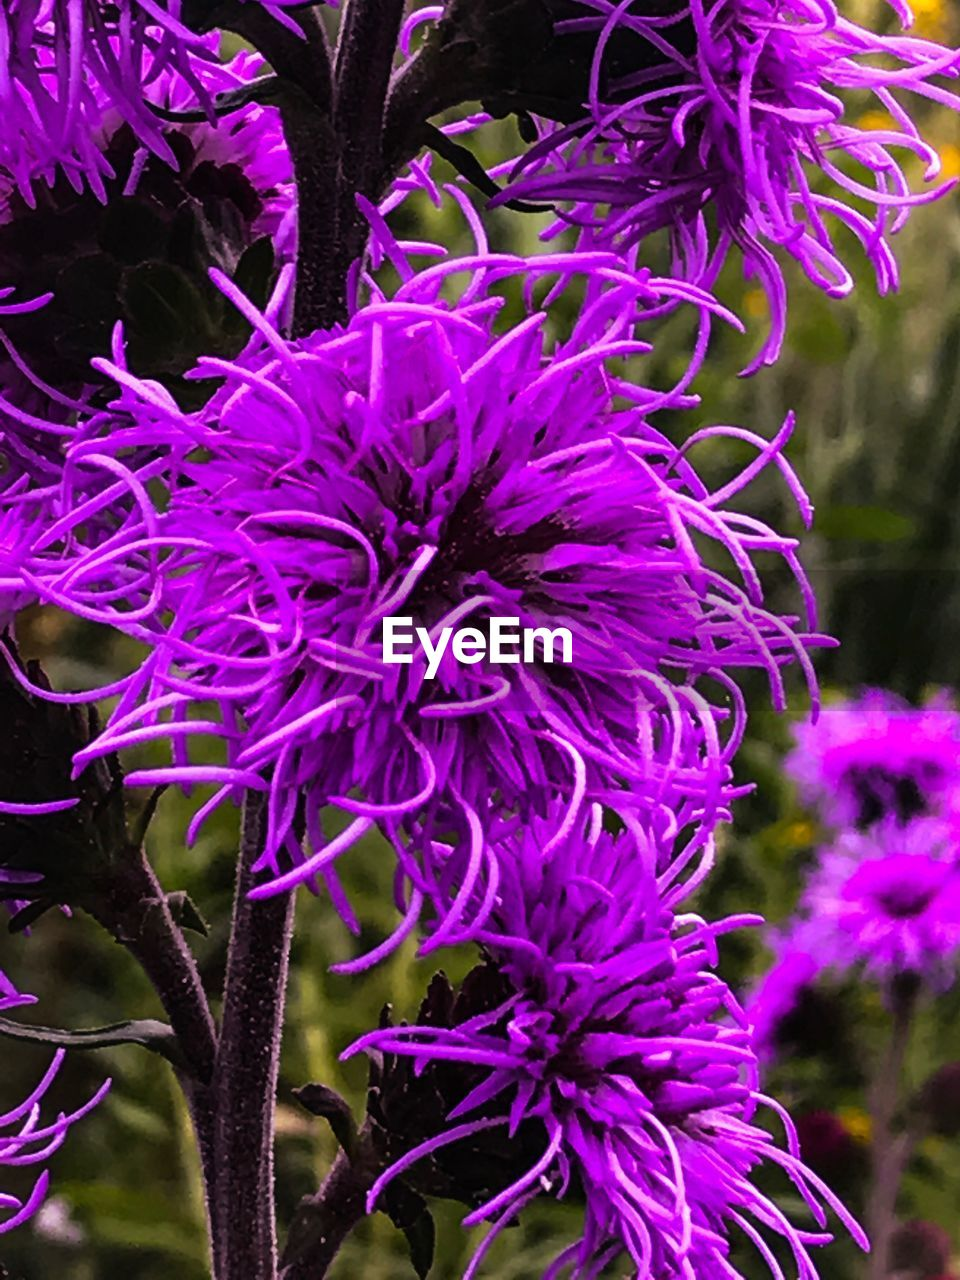 flower, growth, beauty in nature, nature, botany, fragility, purple, plant, blossom, petal, no people, freshness, close-up, flower head, day, springtime, outdoors, blooming